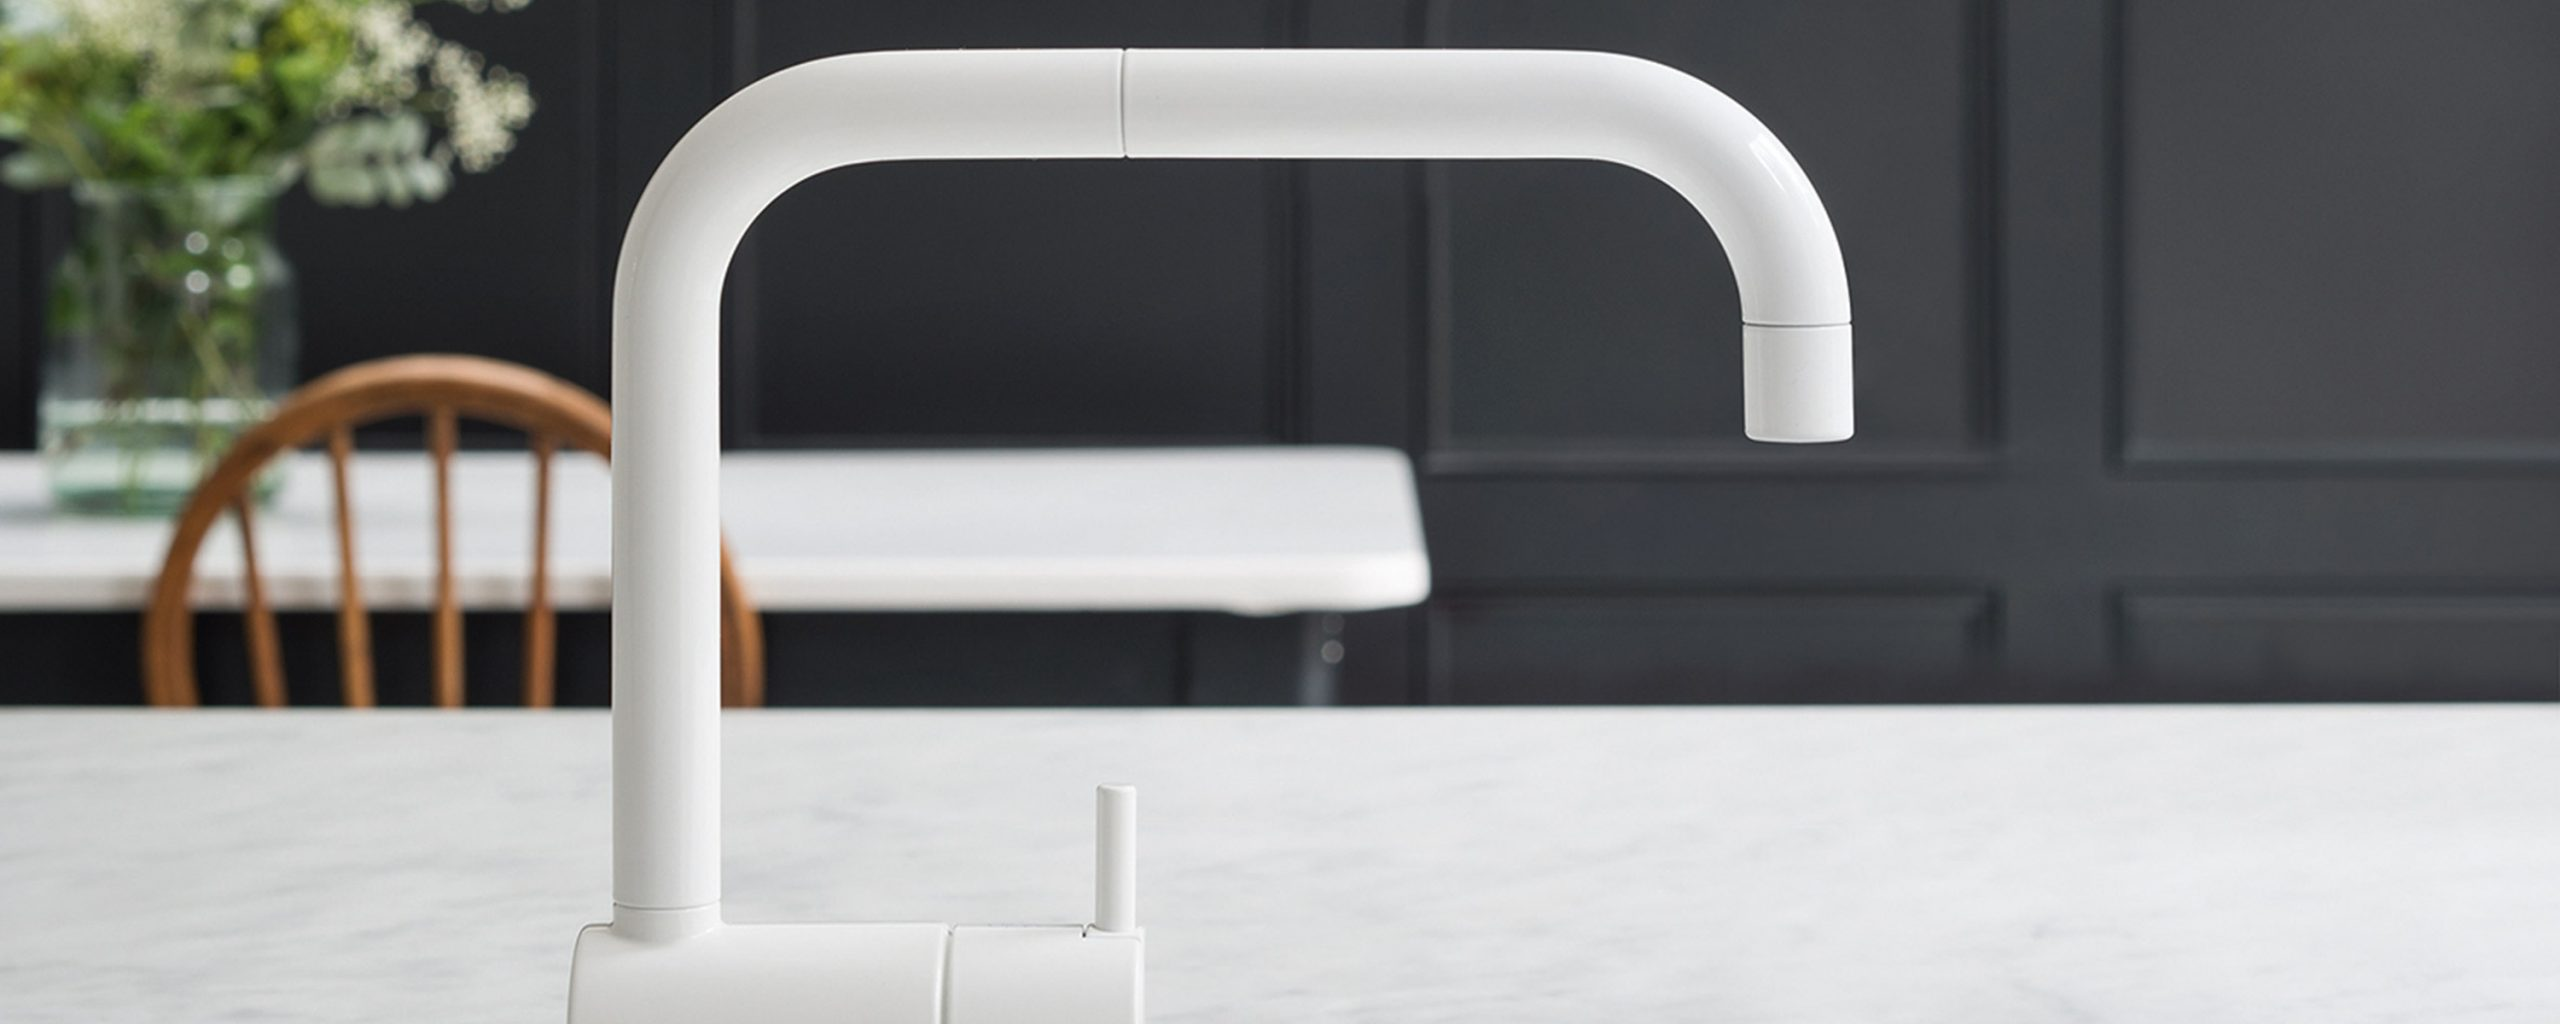 black and white kitchen with white faucet